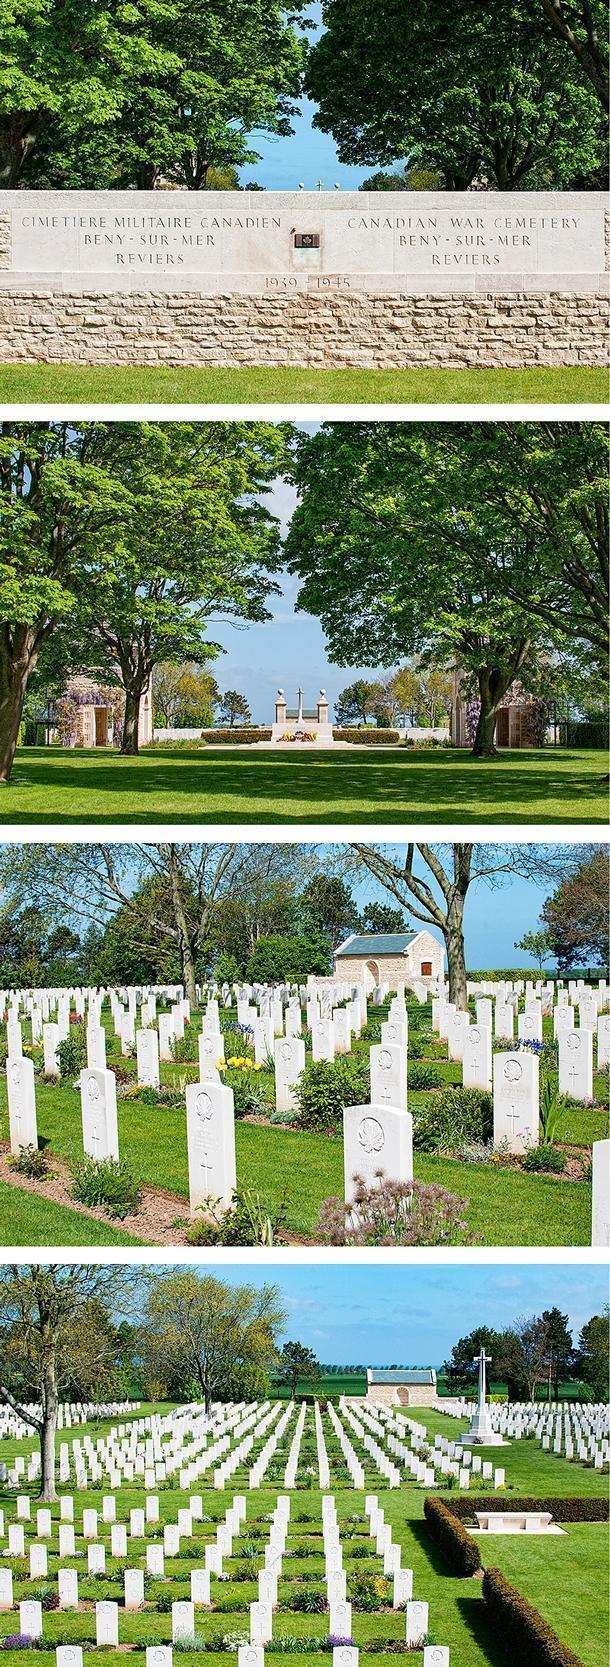 The Beny-sur-mer Cemetery, near Juno Beach, in Normandy